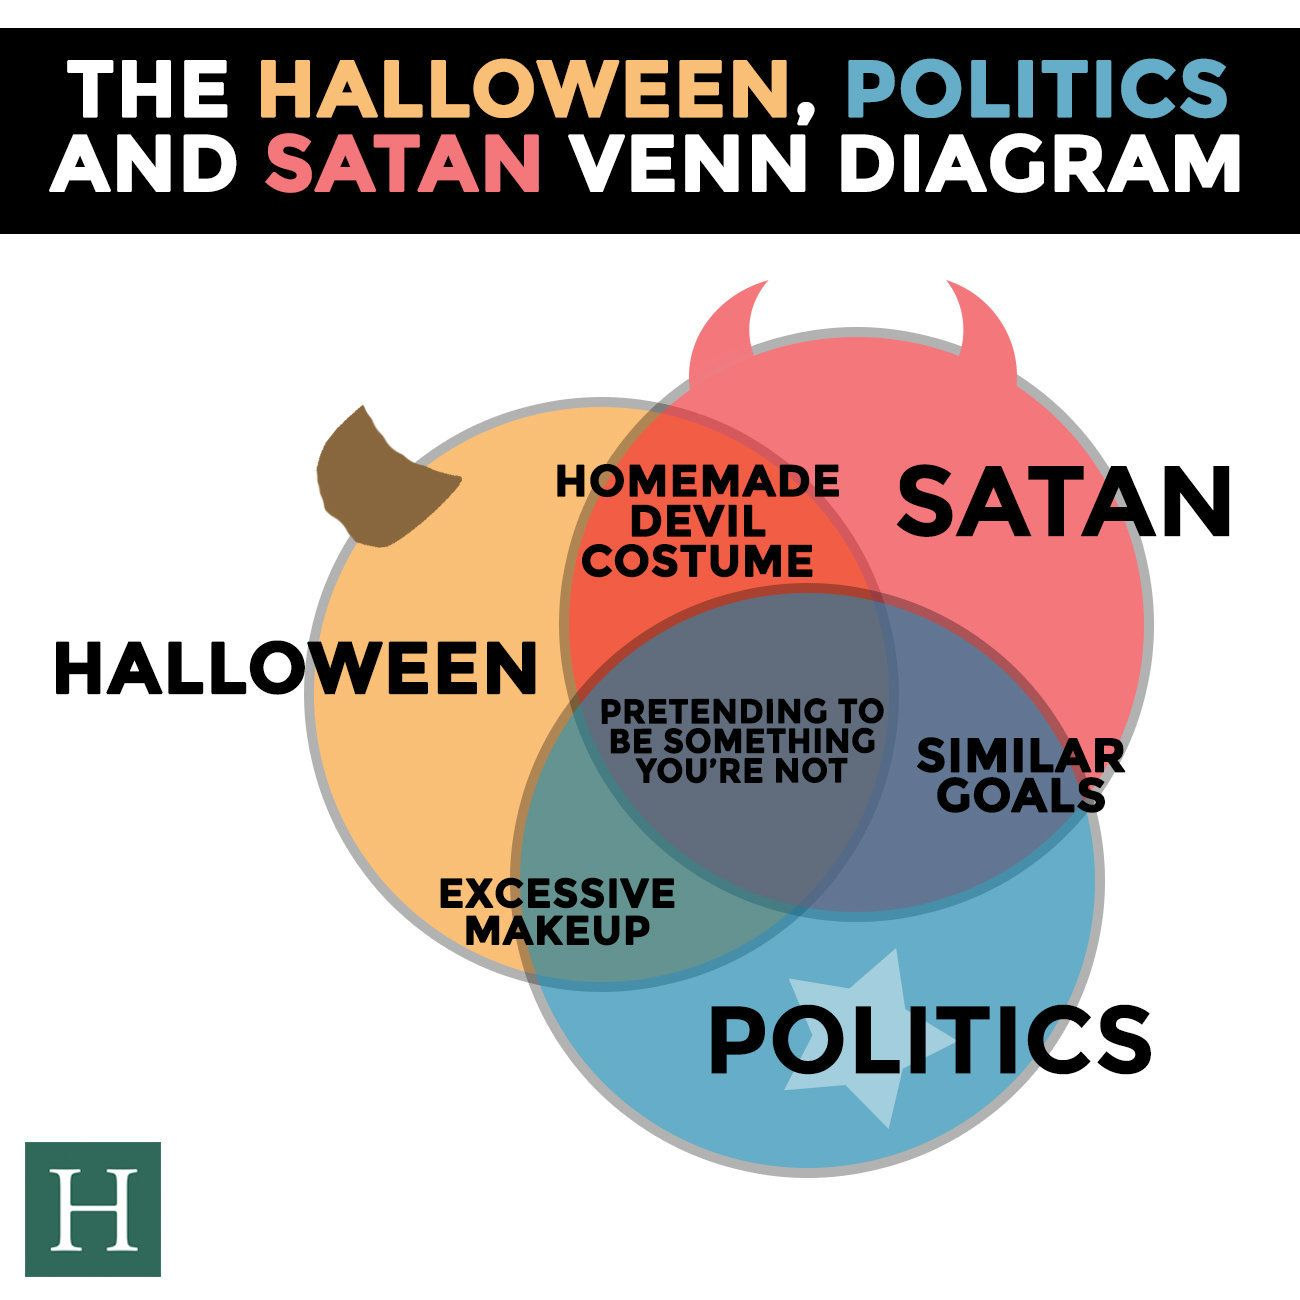 one diagram shows how halloween politics and satan are the same venn diagram maker microsoft venn diagram makeup [ 1300 x 1300 Pixel ]